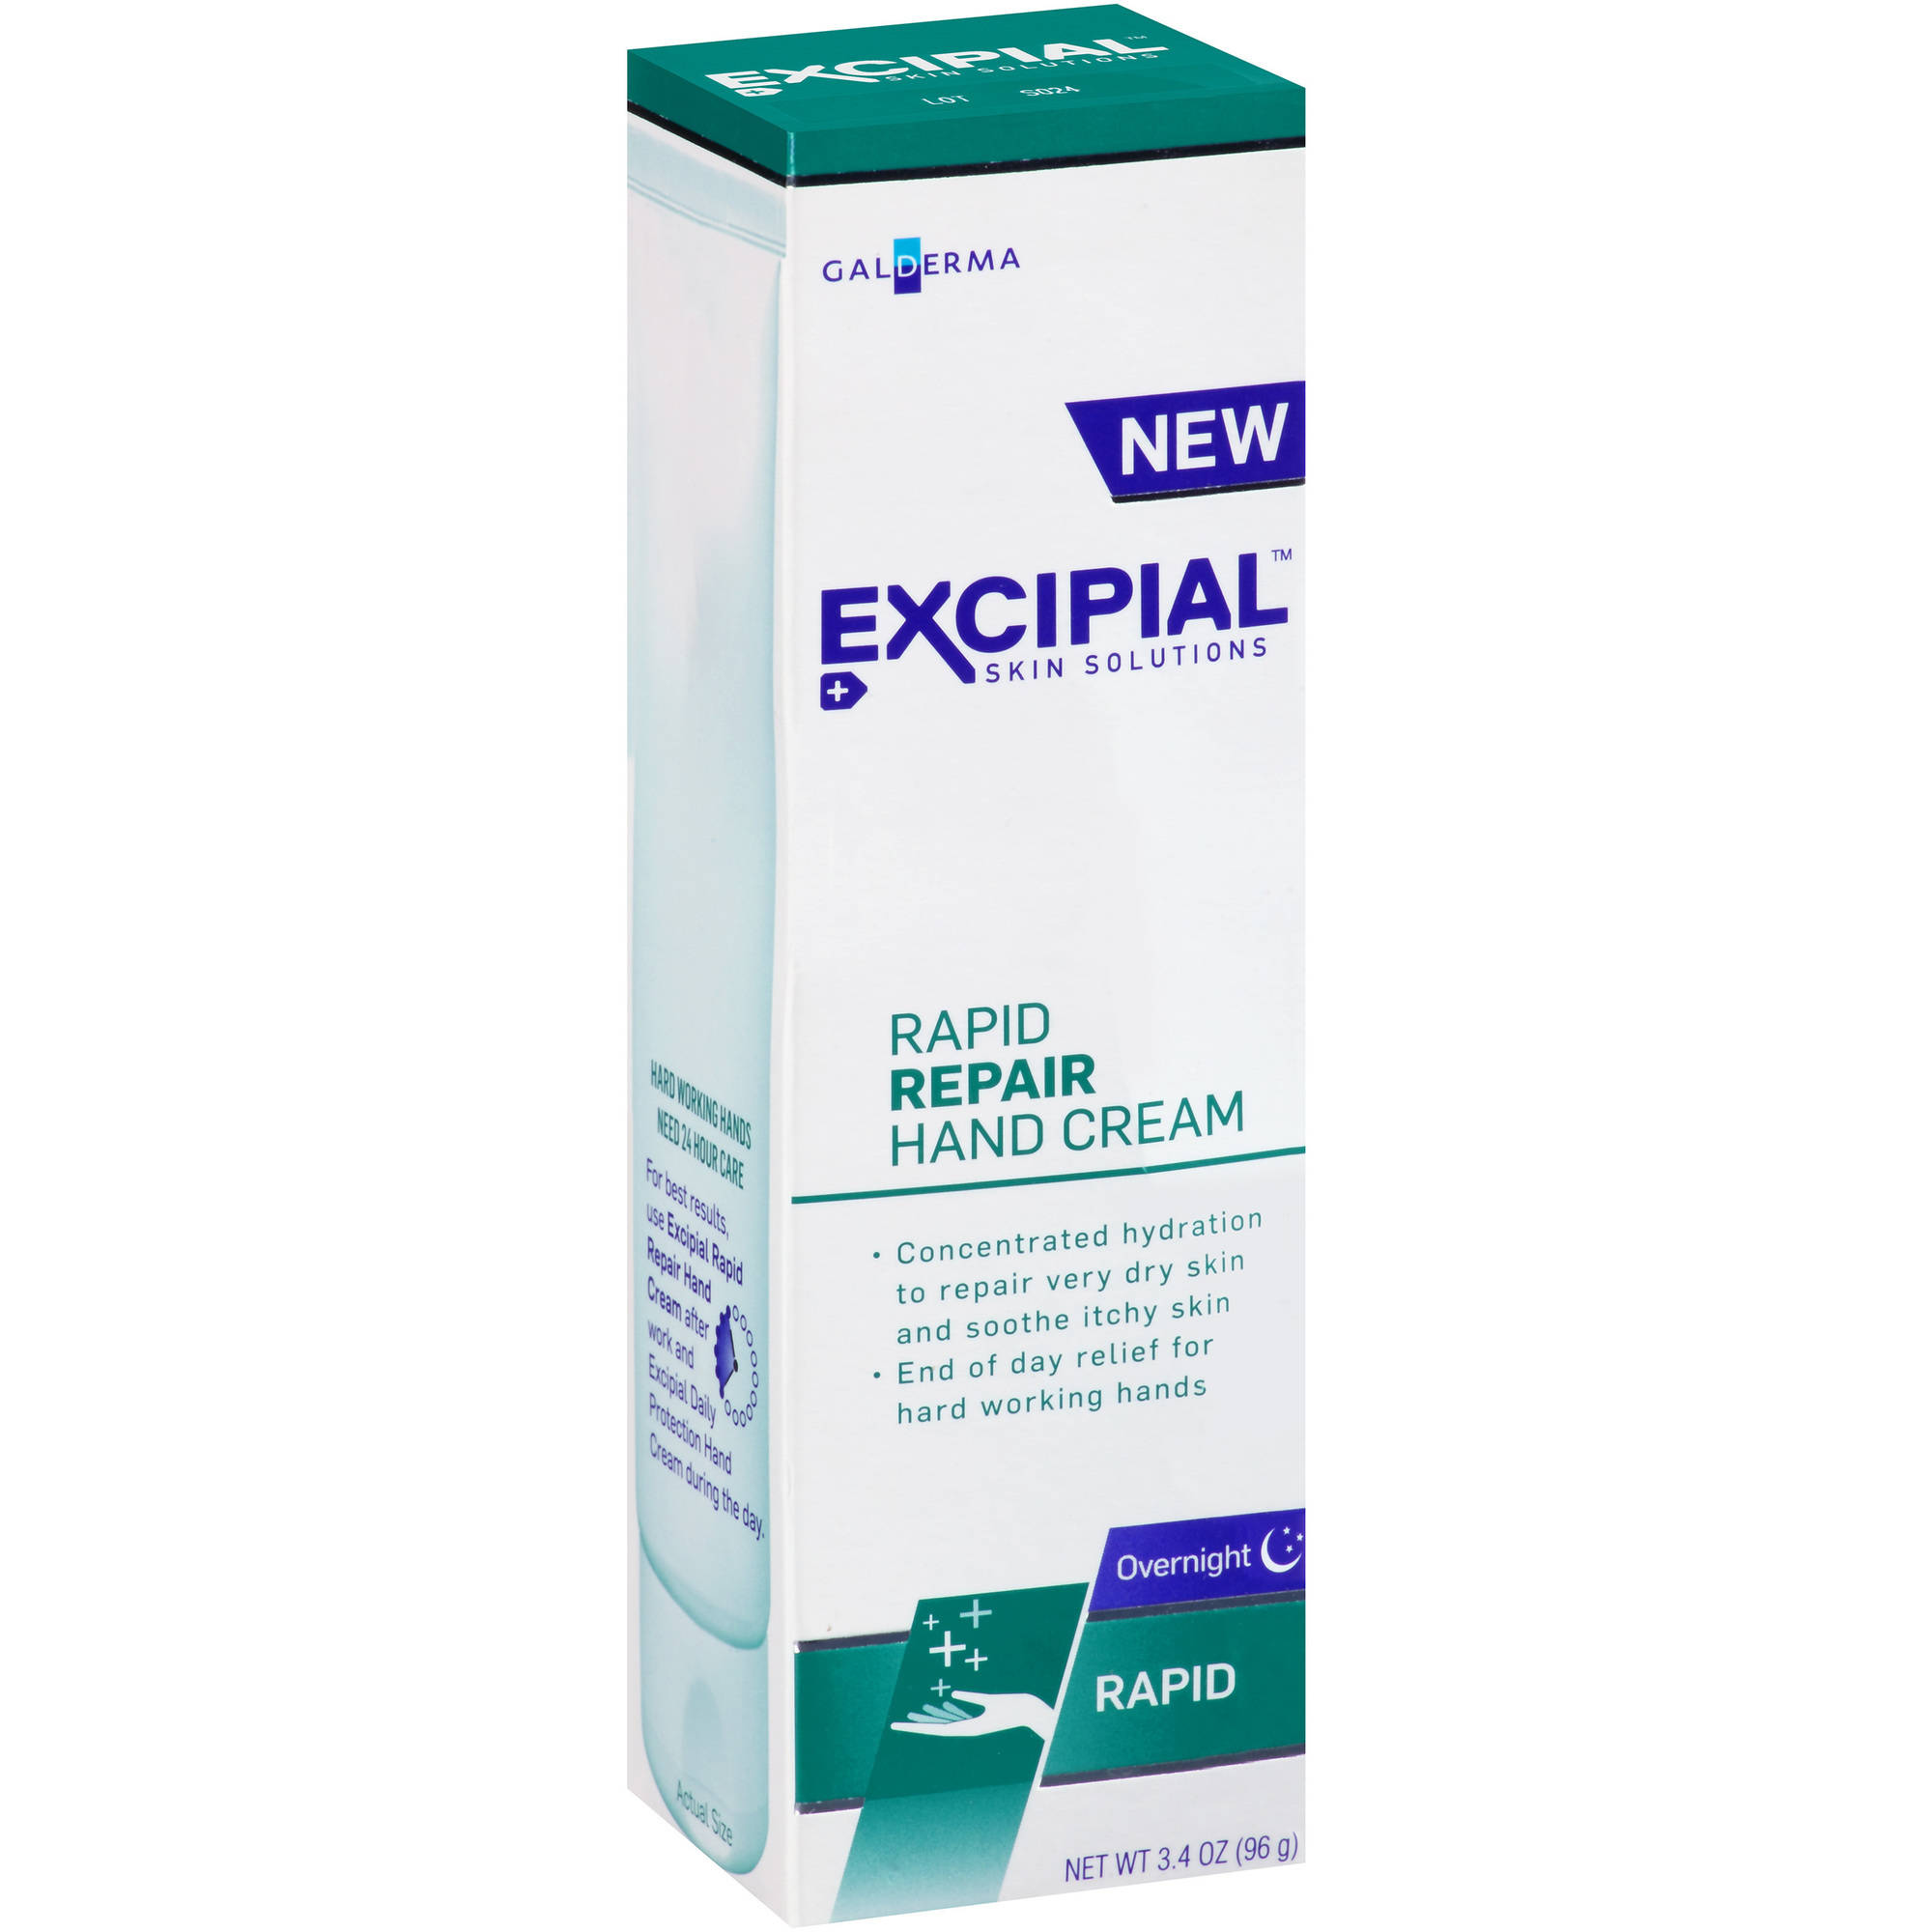 Excipial Rapid Repair Hand Cream, 3.4 oz